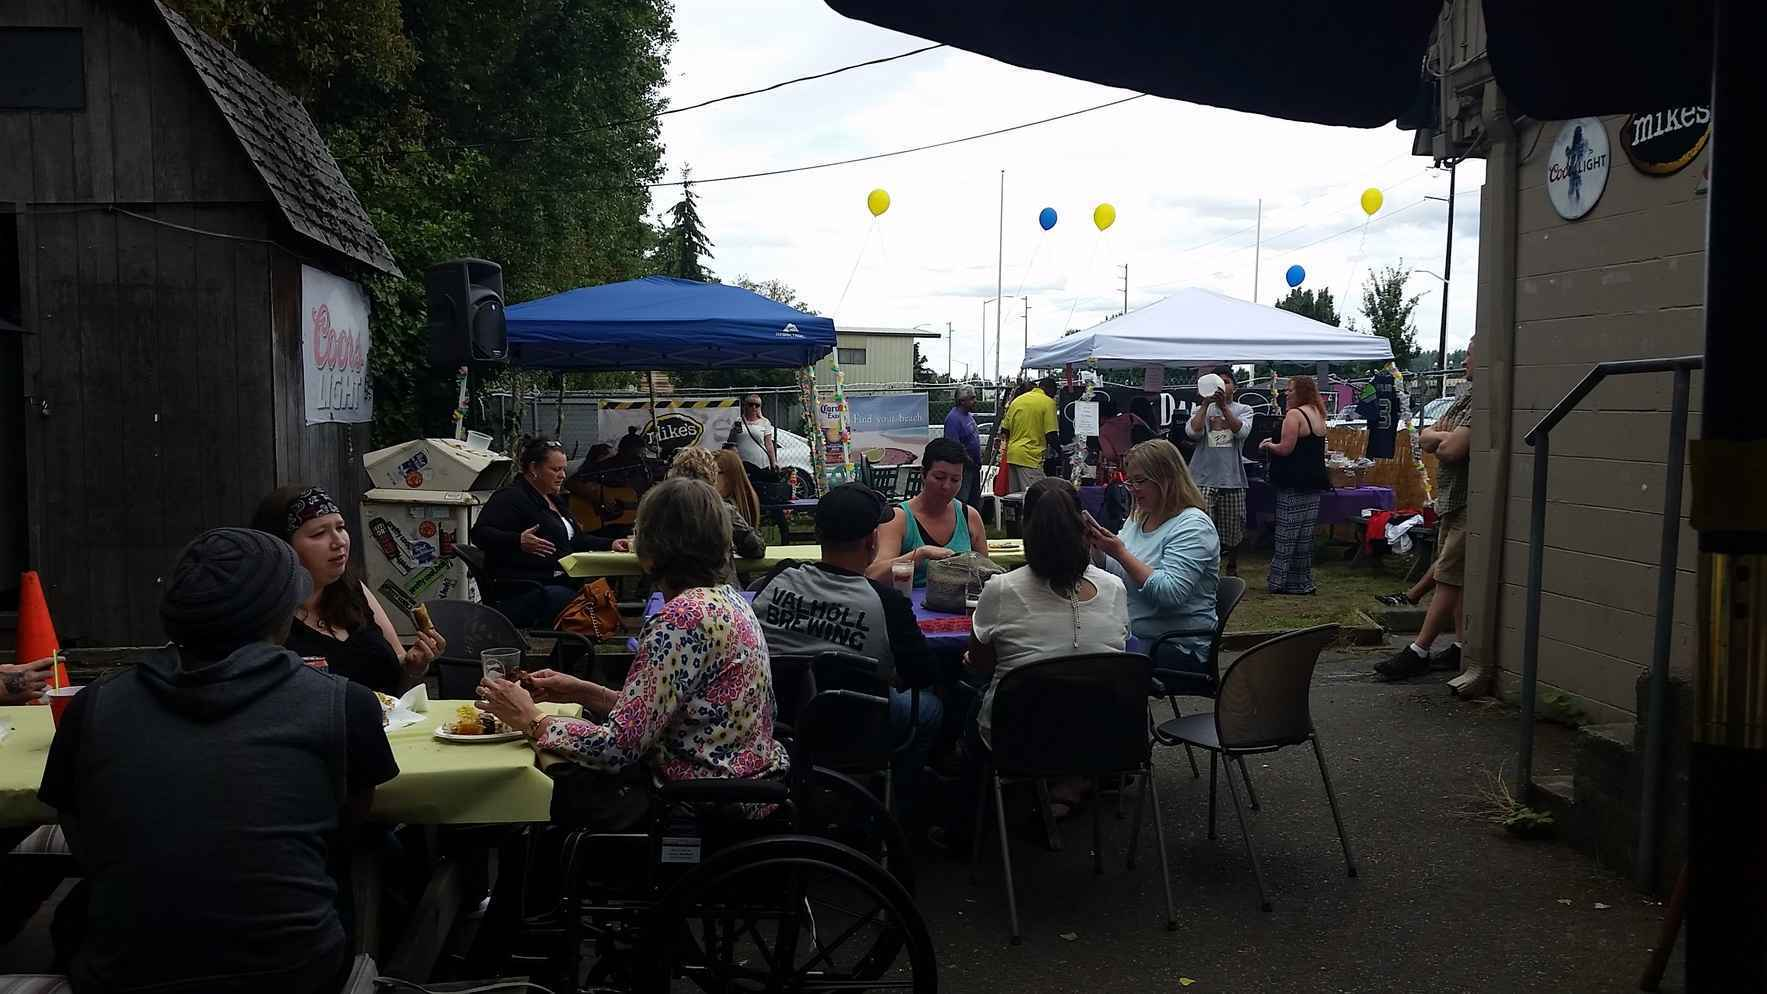 Support survivors of Domestic Violence. Join Dawn in rising for peace in our community. Money raised at this year's BBQ will go towards new playground equipment and/or needs at the children's annex at the shelter. image